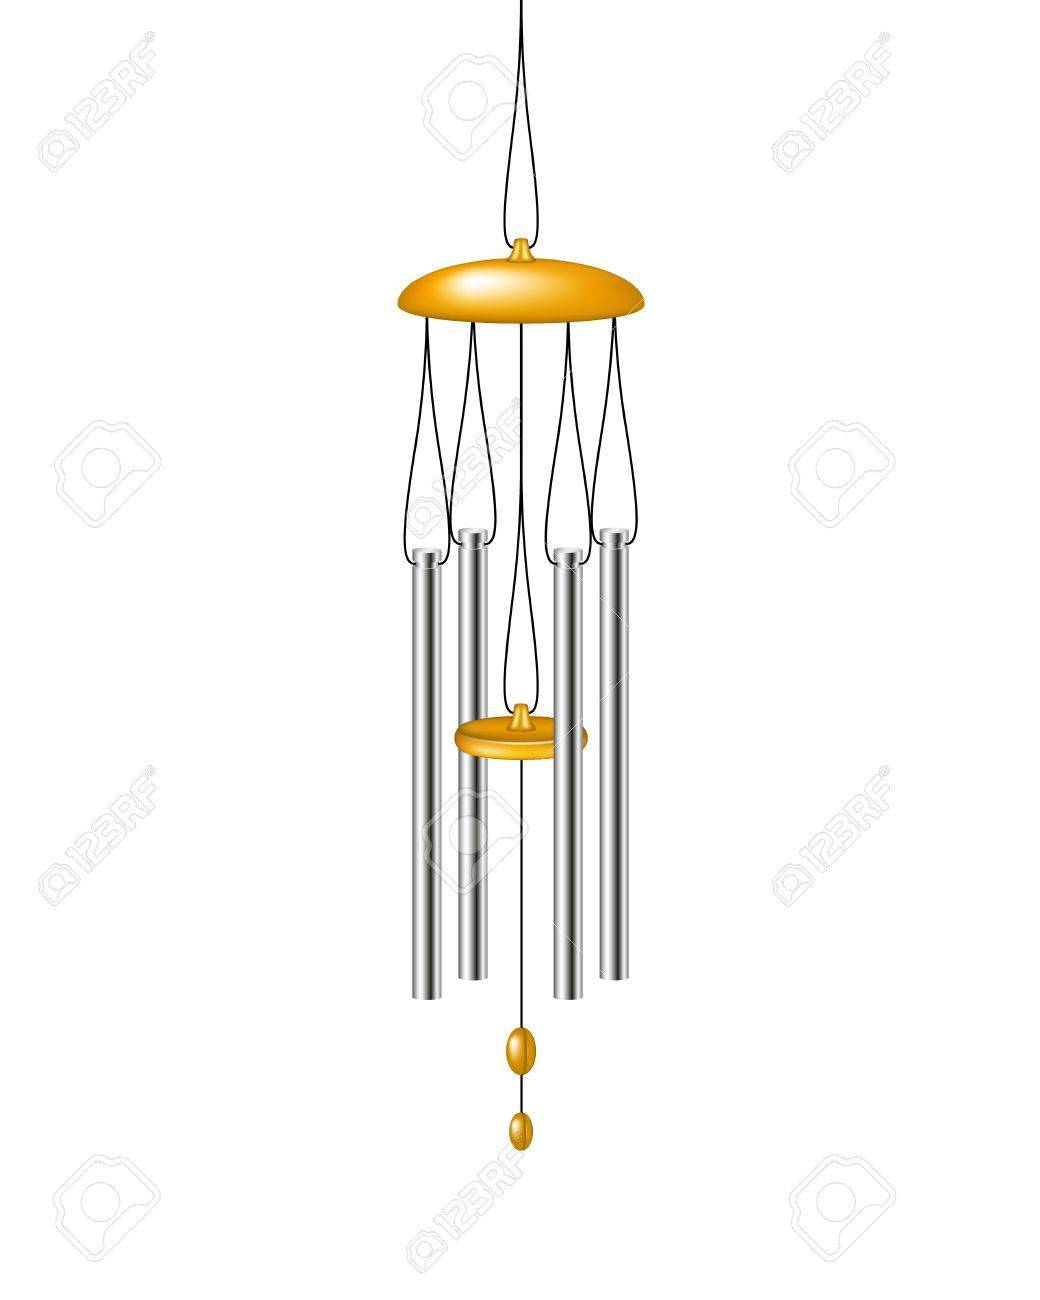 Chimes clipart